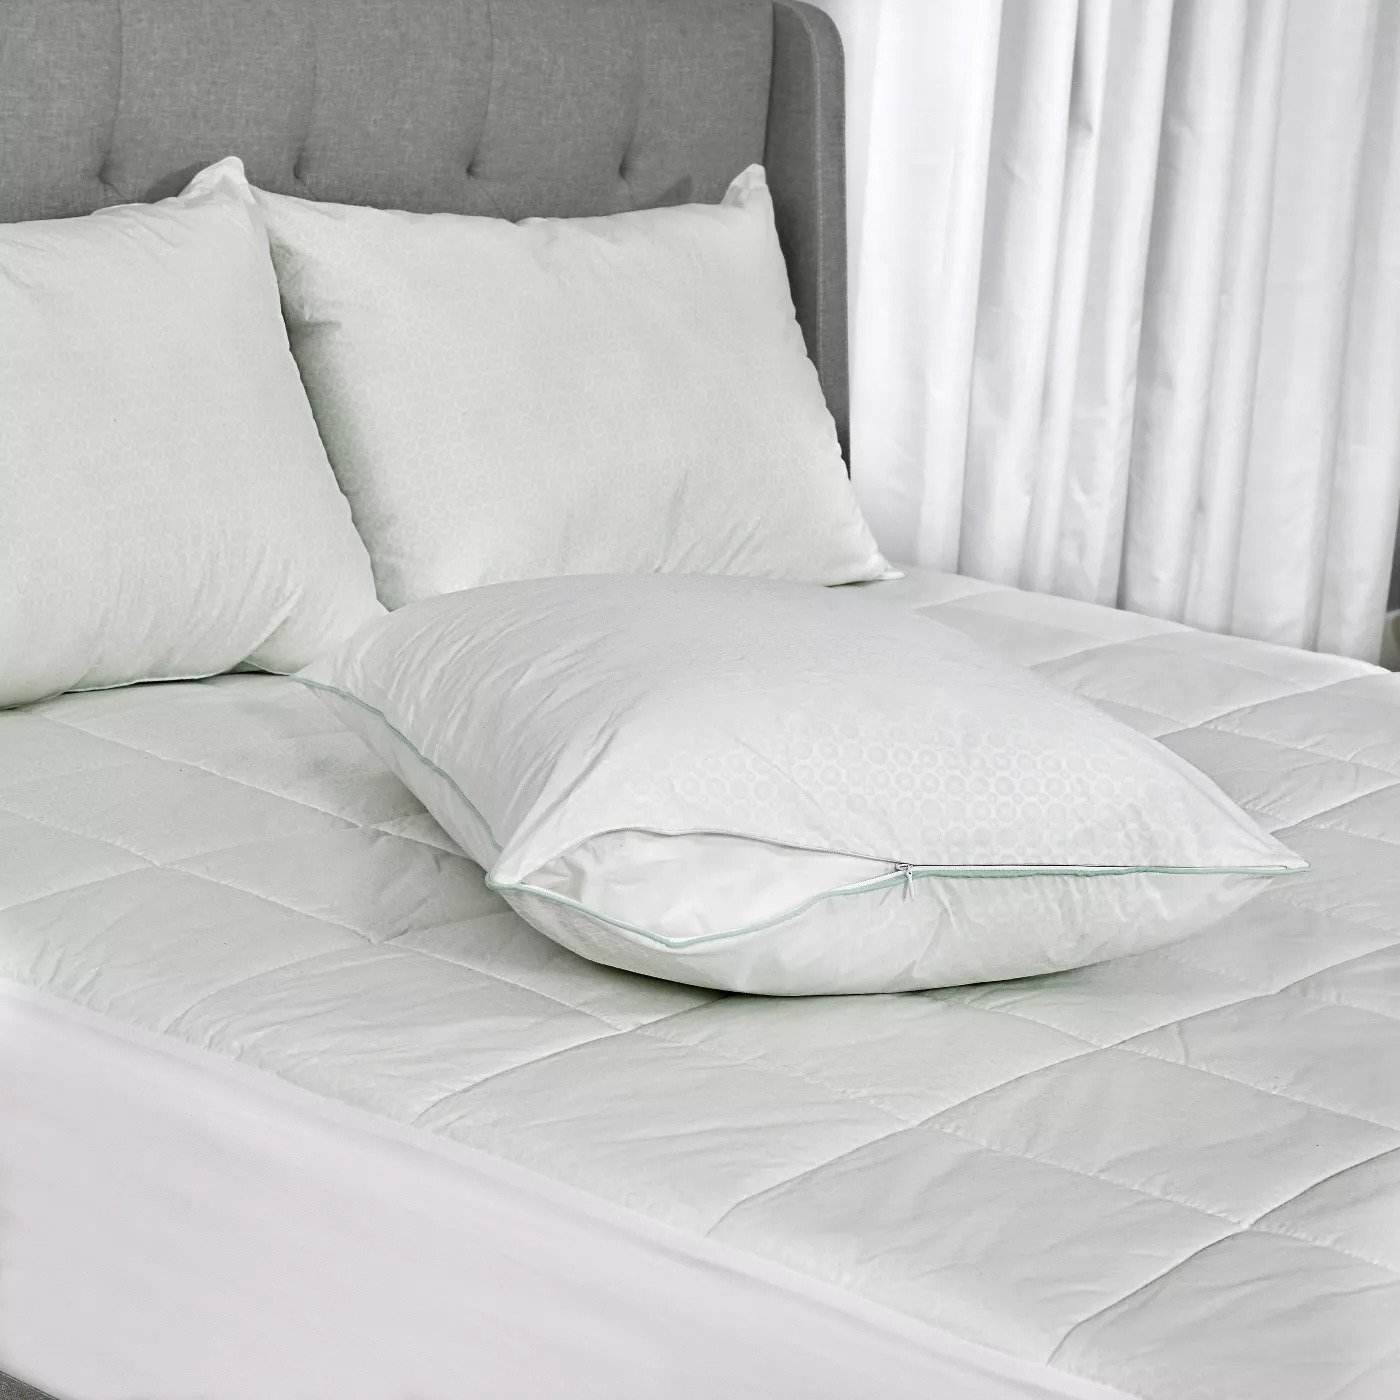 cooling pillow protector is perfect for